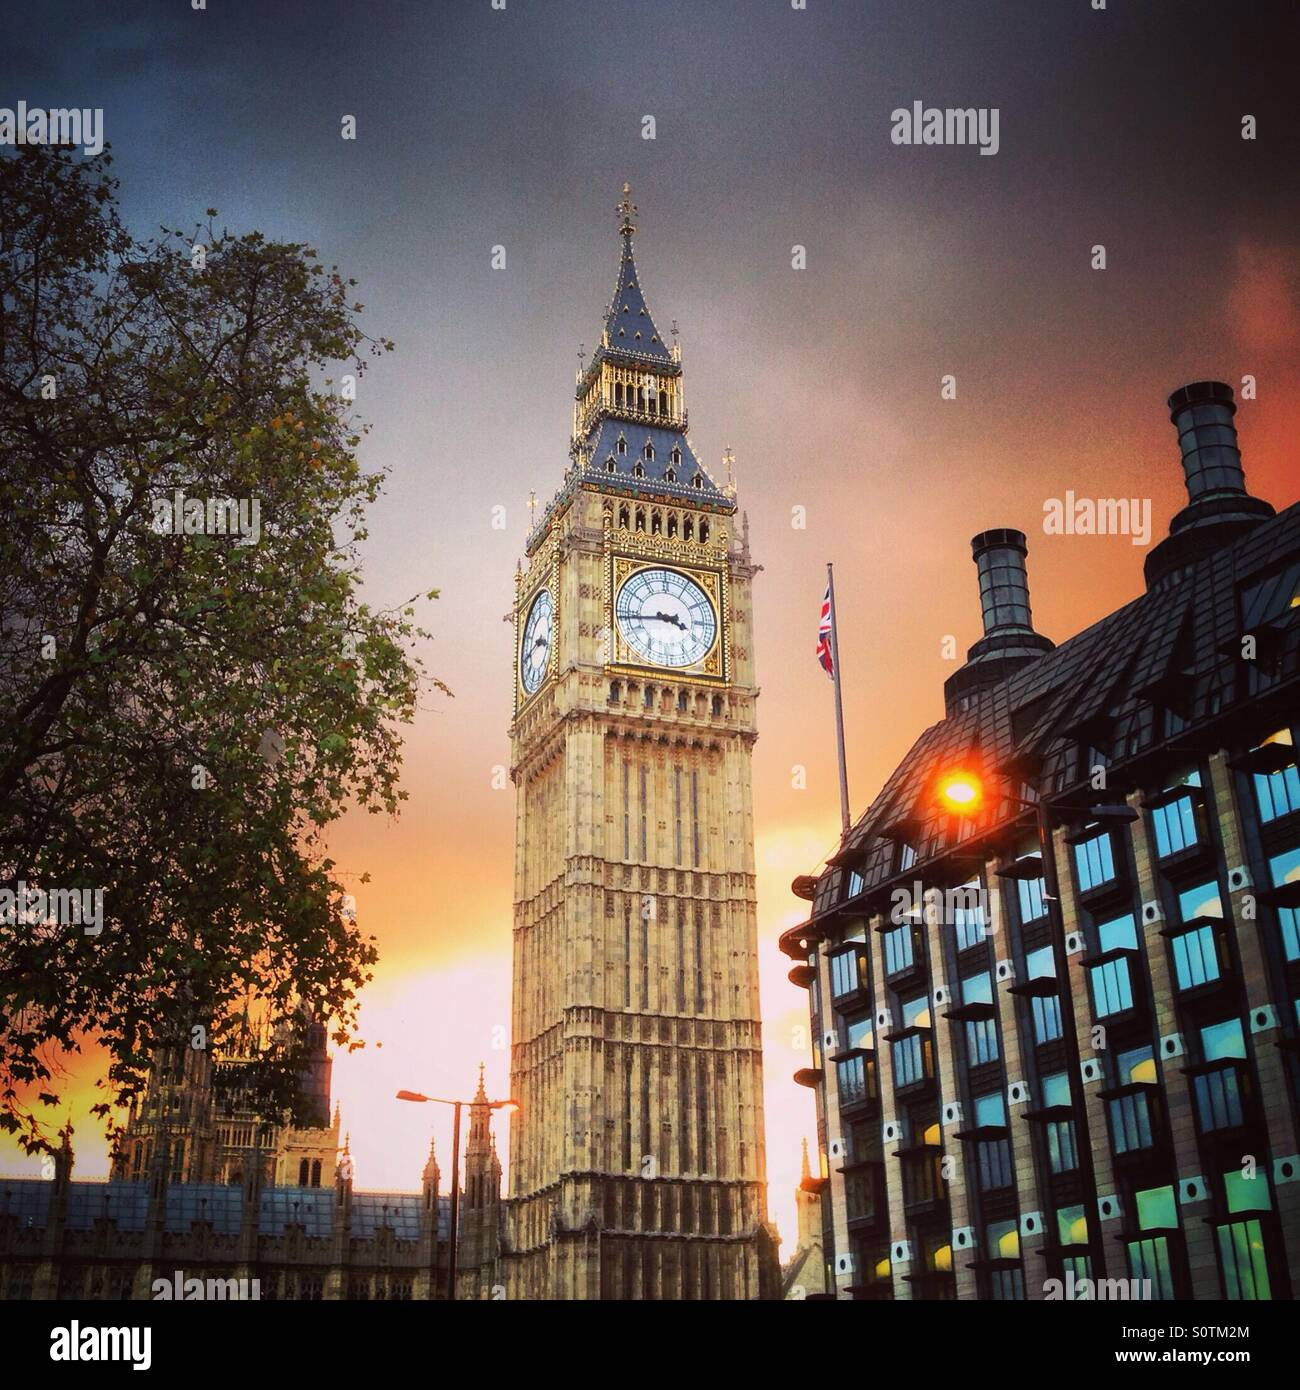 Big Ben at Sunset, the Houses of Parliament, Westminster, London. - Stock Image